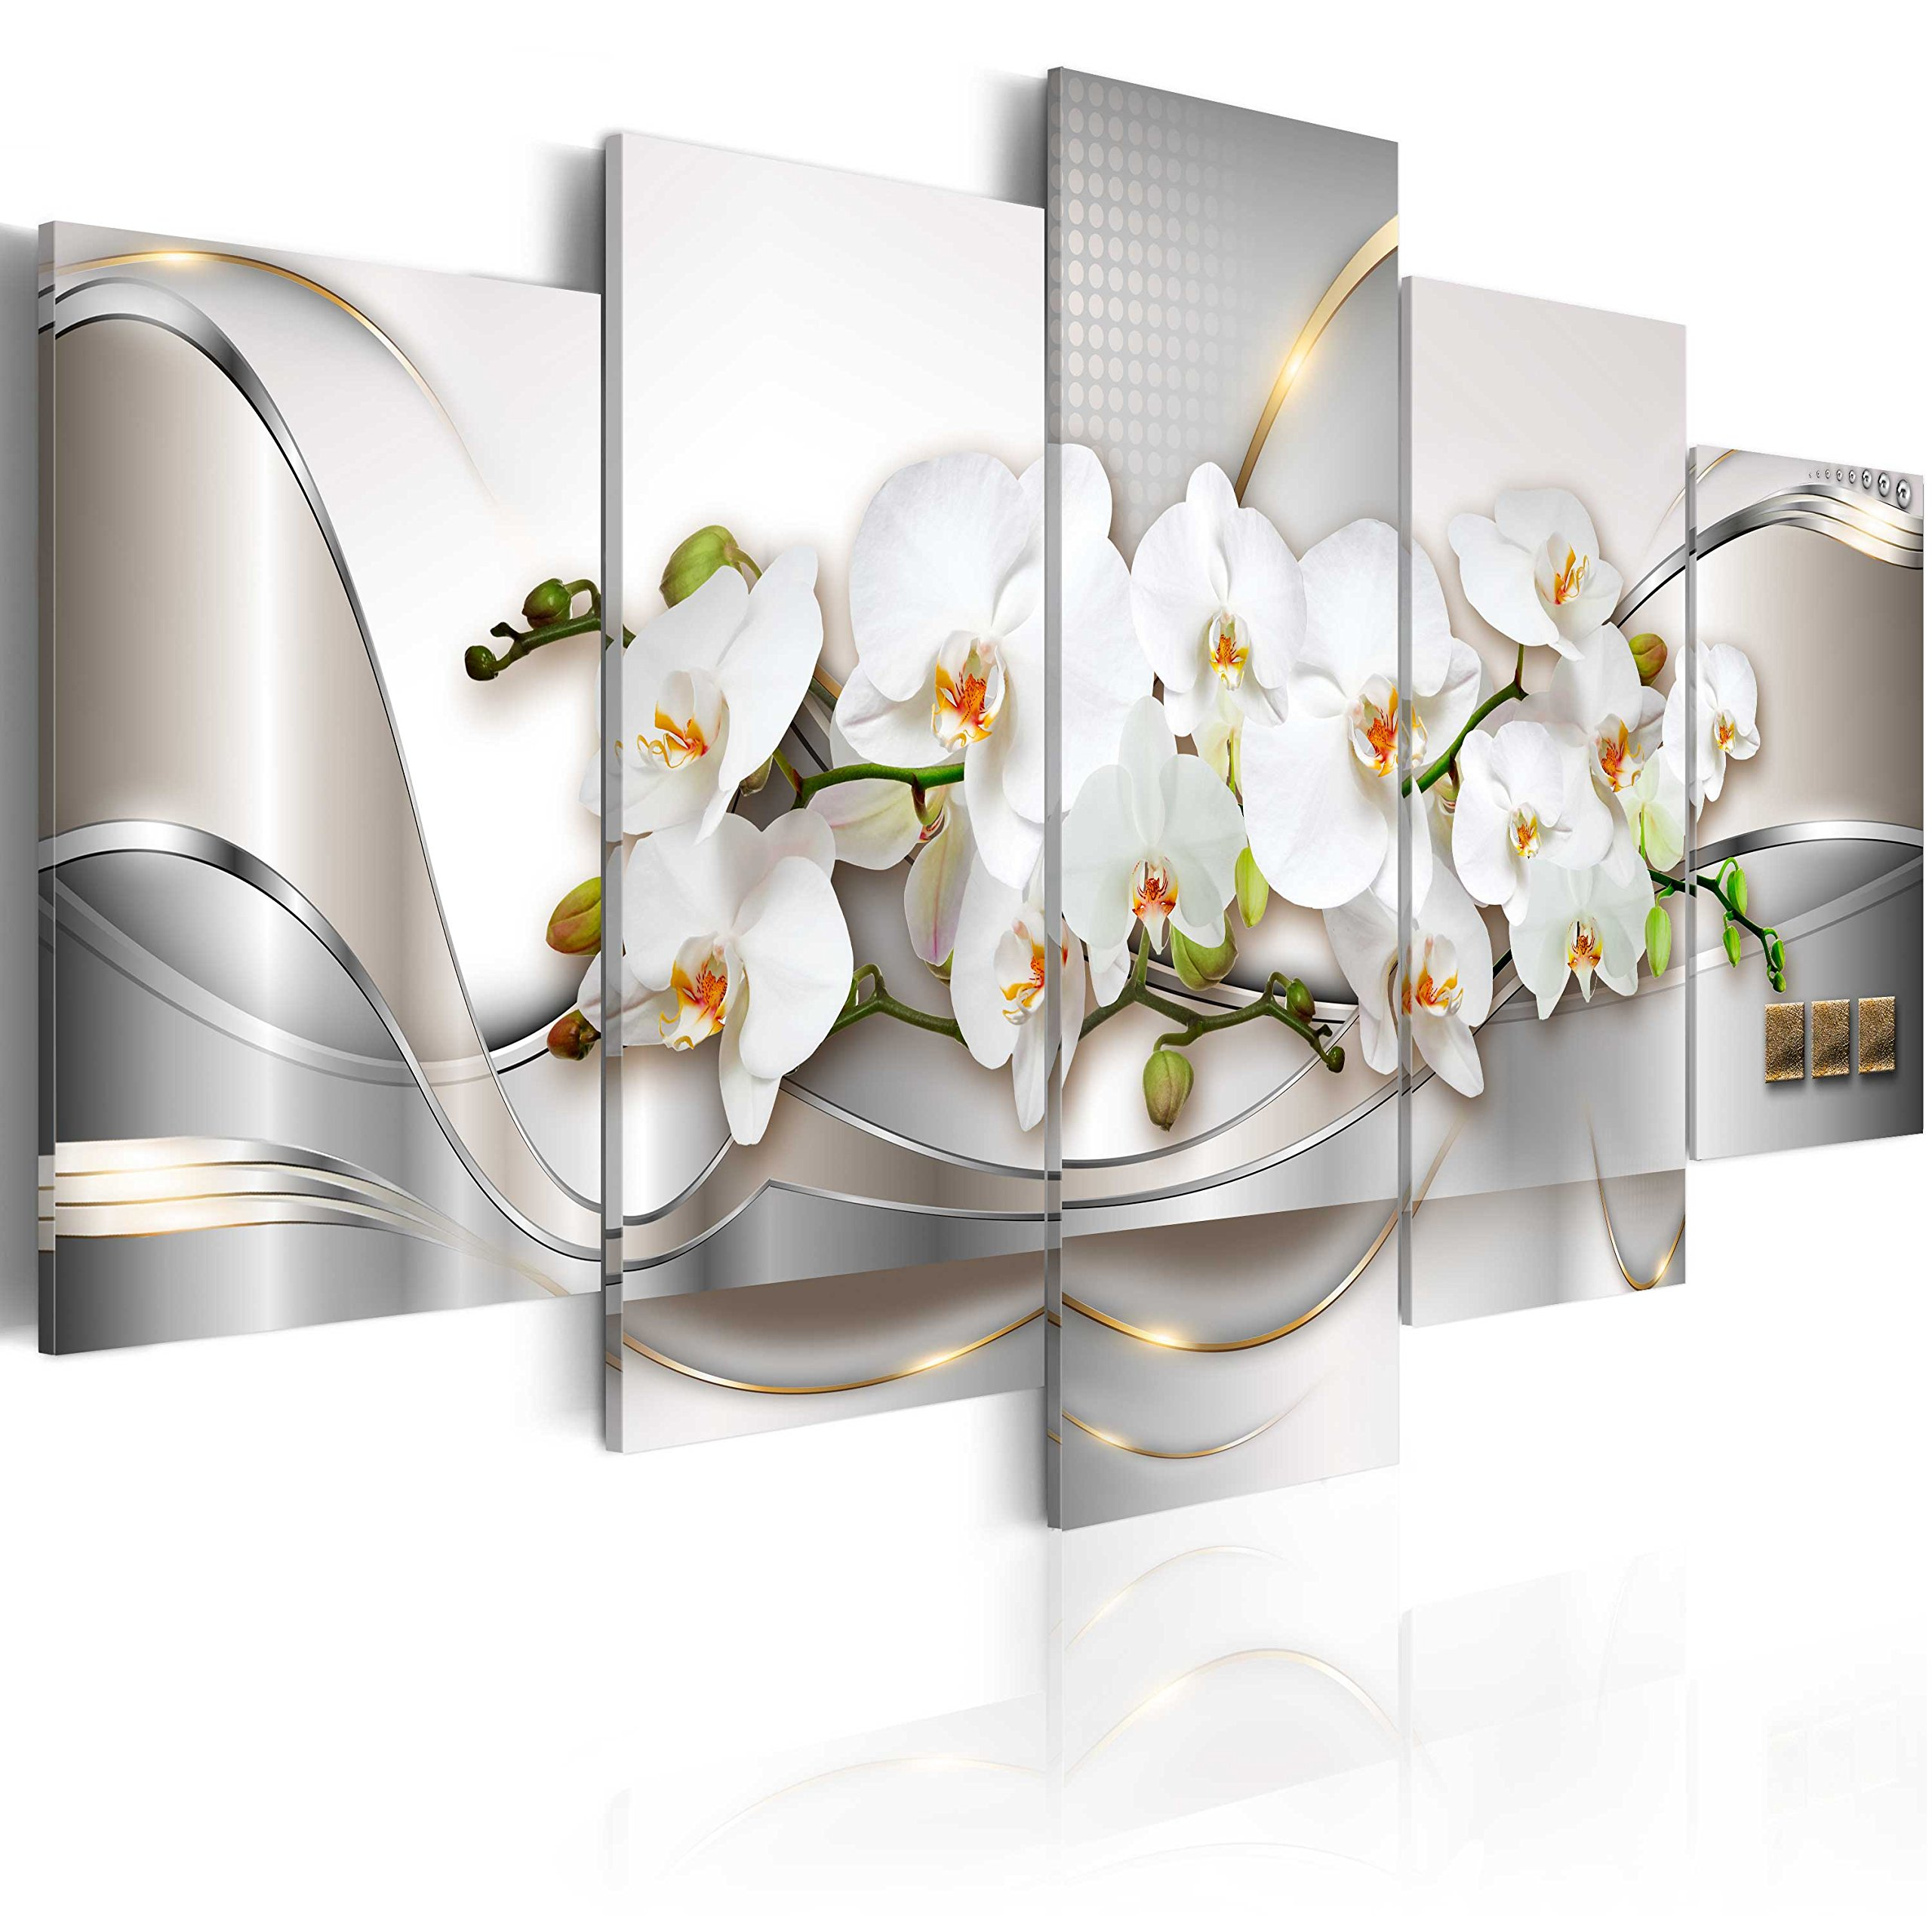 5 Panel Butterfly Orchid Flowers Canvas Print Wall Art Painting Decor for Home Decoration Picture for Bedroom Framed Ready to Hang White Floral Artwork (40''x20'', Ocean of Innocence) by Everlands Art